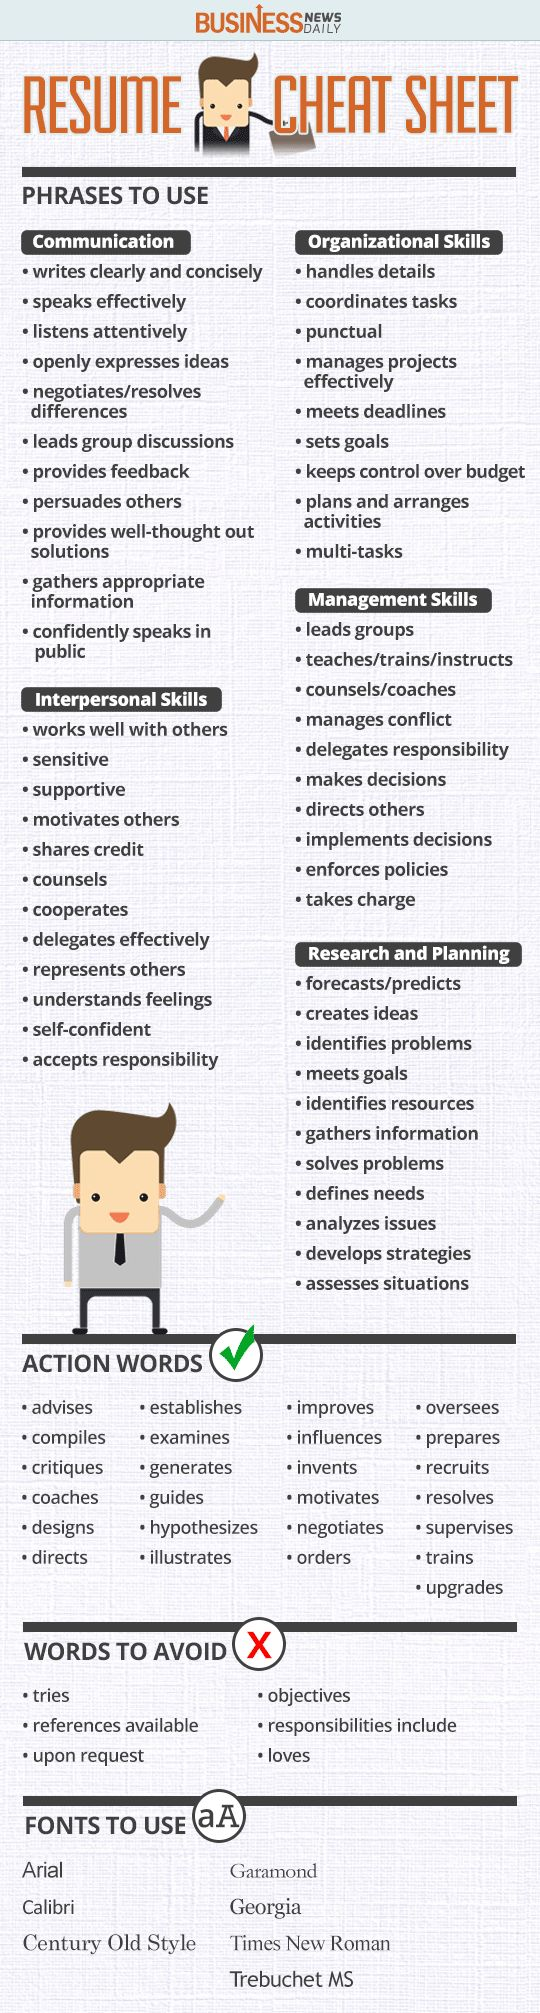 Opposenewapstandardsus  Nice  Ideas About Resume On Pinterest  Cv Format Resume  With Exciting Resume Cheat Sheet Infographic Andrews Almost Done With A Complete Unit On Employment Which With Captivating Free Resume Form Also Resume Tracking Software In Addition Resume My Career And Resume Skills Customer Service As Well As Resume Cv Difference Additionally Forklift Resume Sample From Pinterestcom With Opposenewapstandardsus  Exciting  Ideas About Resume On Pinterest  Cv Format Resume  With Captivating Resume Cheat Sheet Infographic Andrews Almost Done With A Complete Unit On Employment Which And Nice Free Resume Form Also Resume Tracking Software In Addition Resume My Career From Pinterestcom